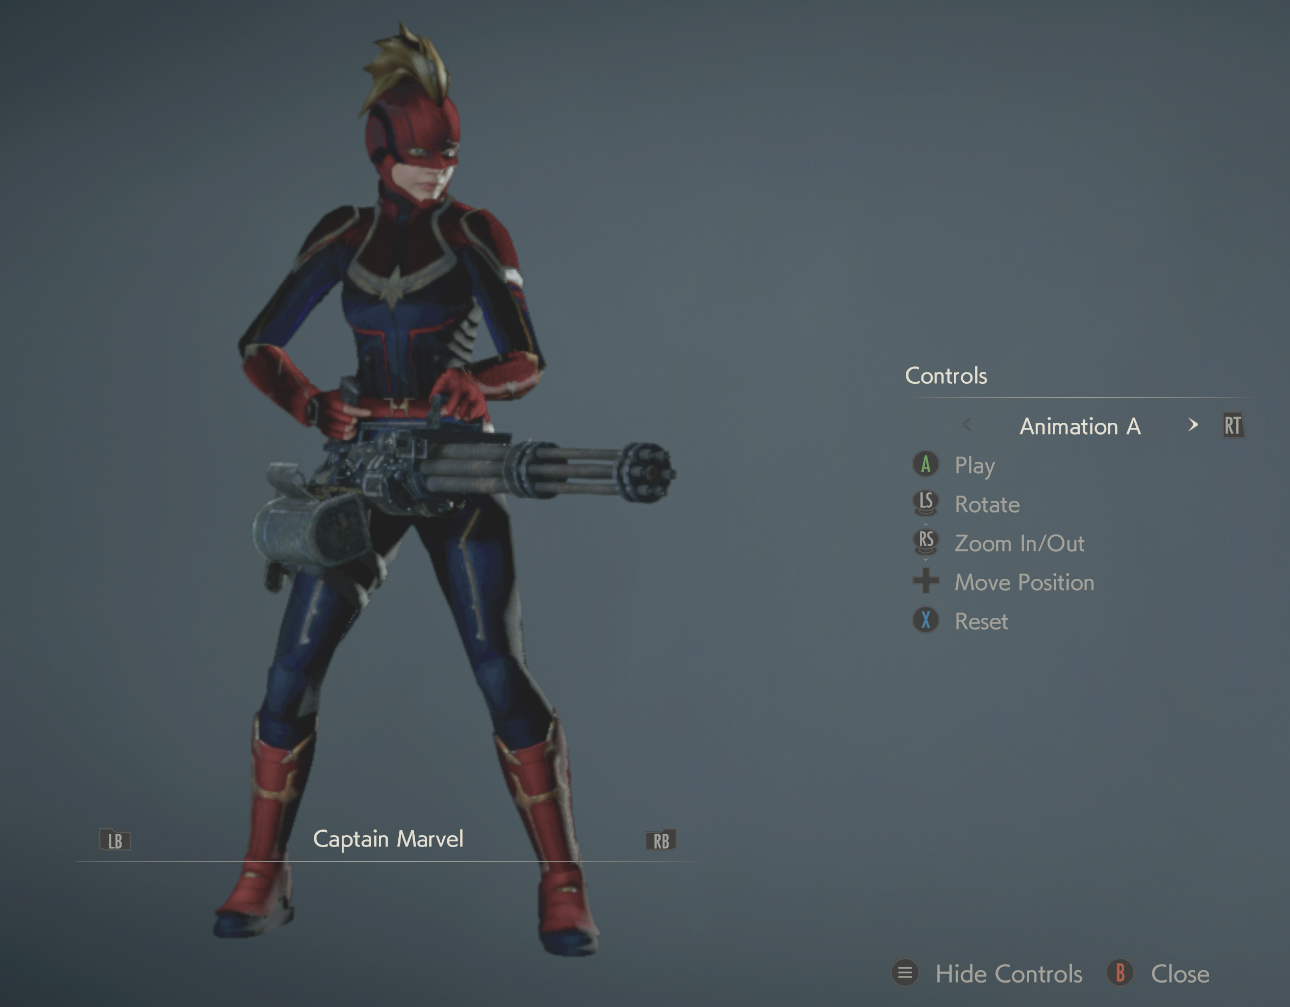 How to Play as Captain Marvel in Resident Evil 2 Remake   GameWatcher